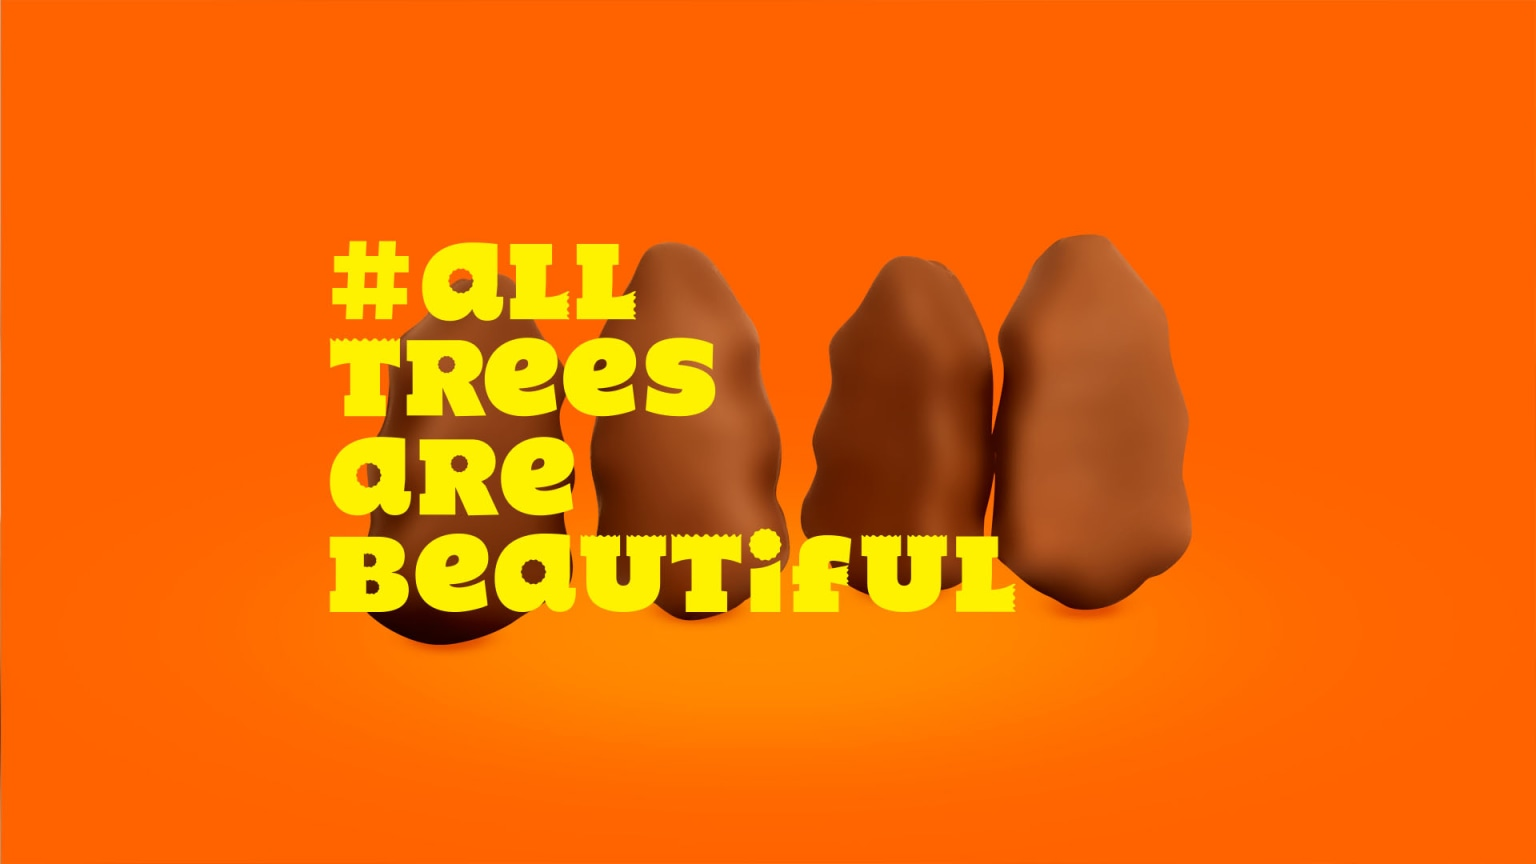 Reese's All Trees Are Beautiful